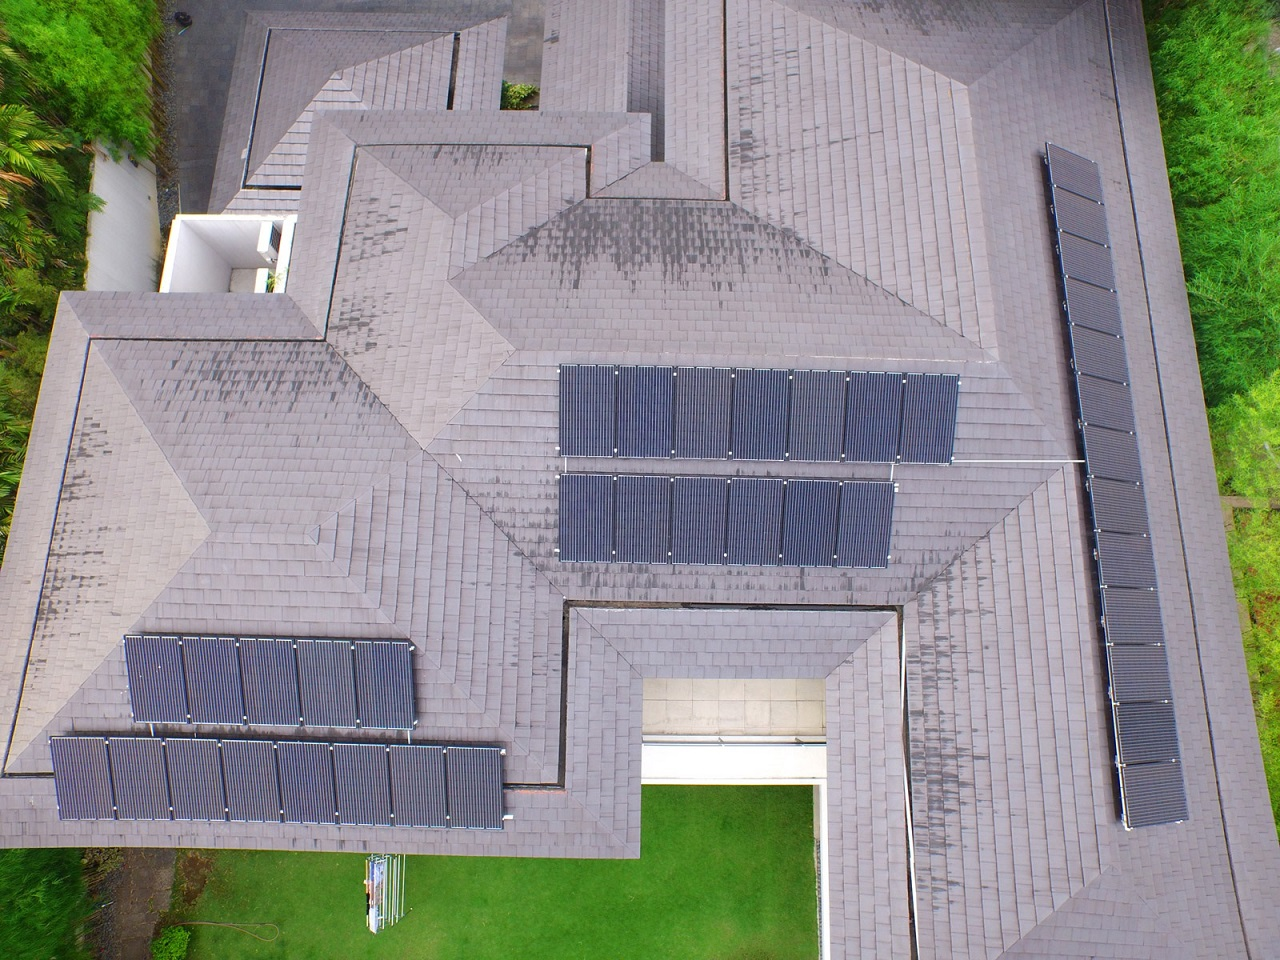 Top view of a home with solar panels